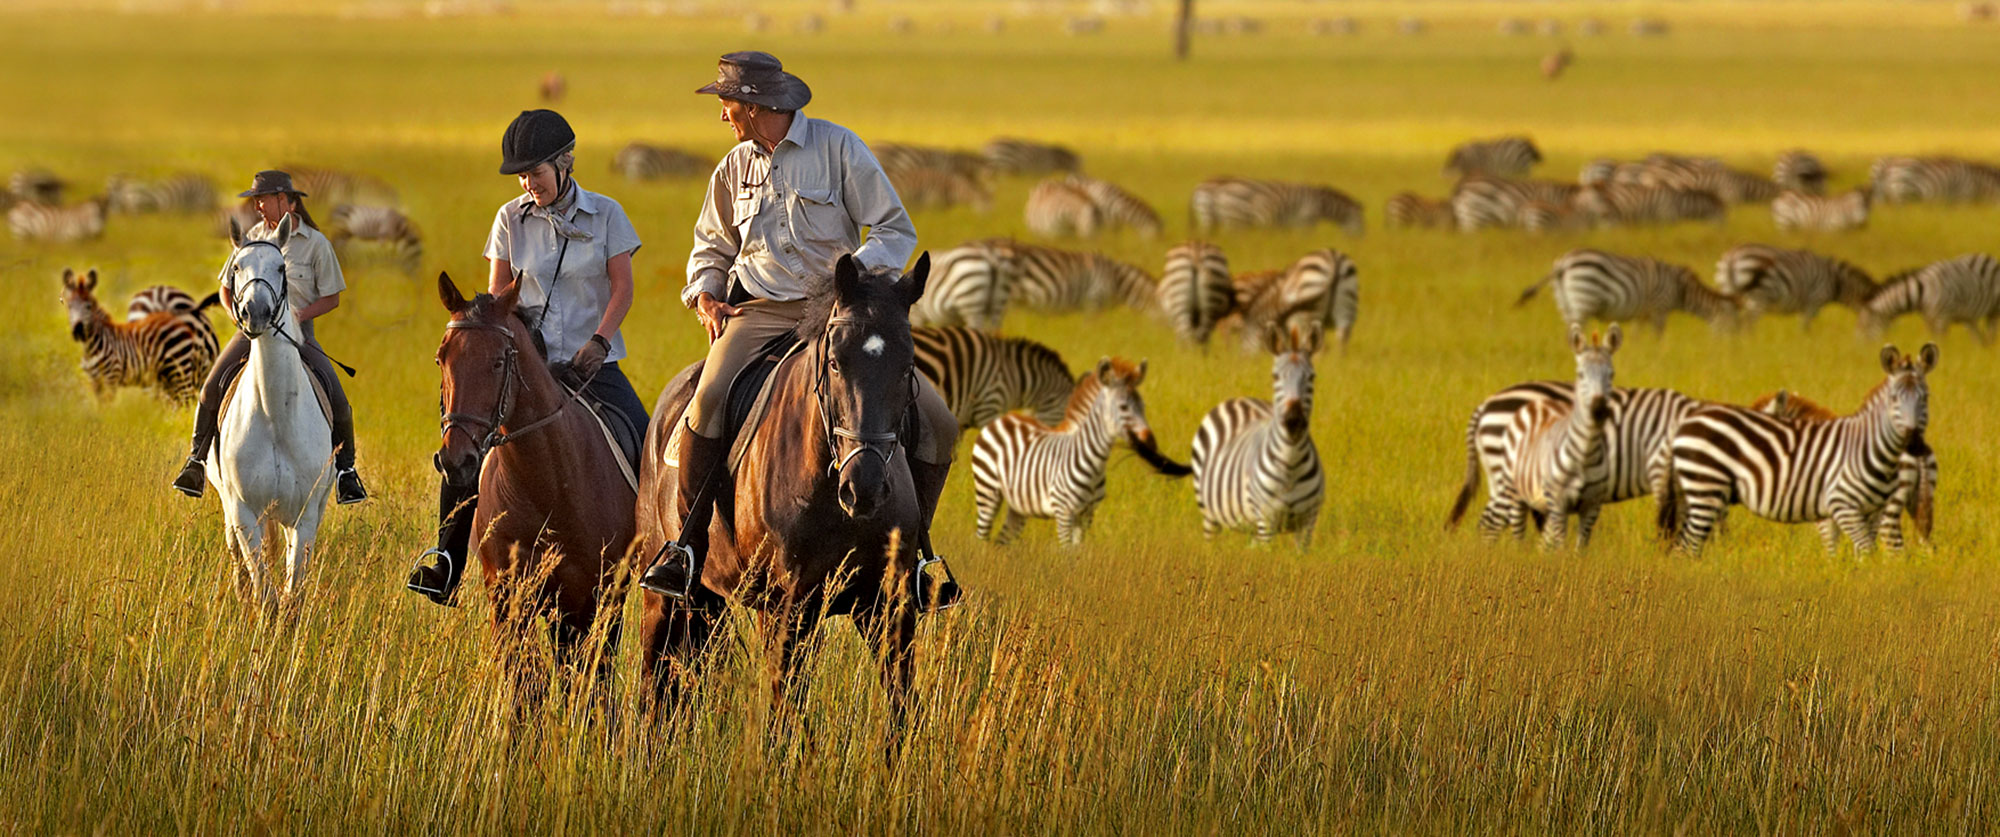 best safari travel expert - horse safari - game drive